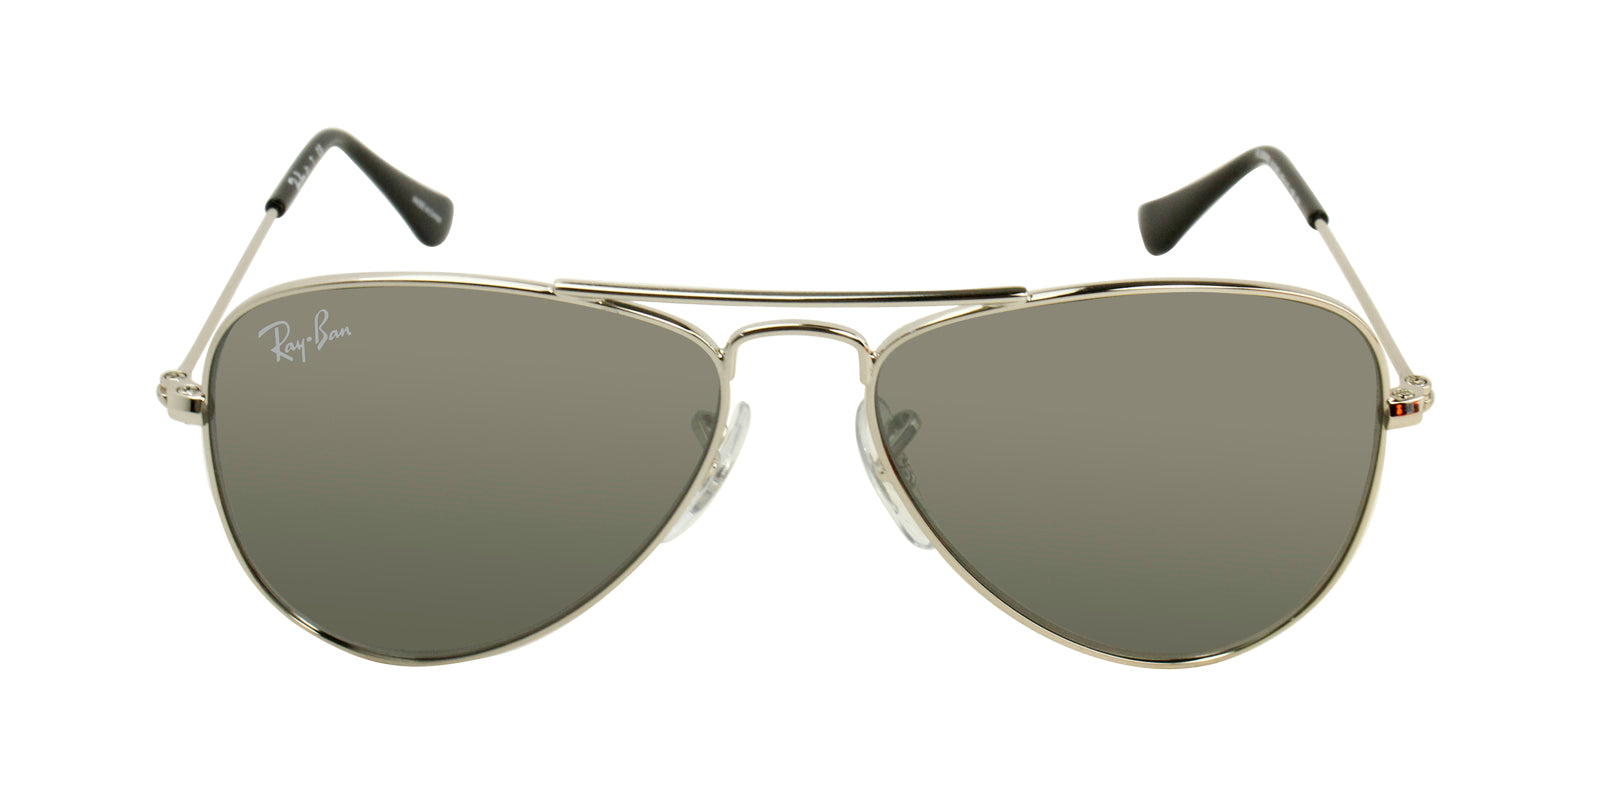 Ray Ban Jr - RJ9506S Silver Aviator Kids Sunglasses - 50mm